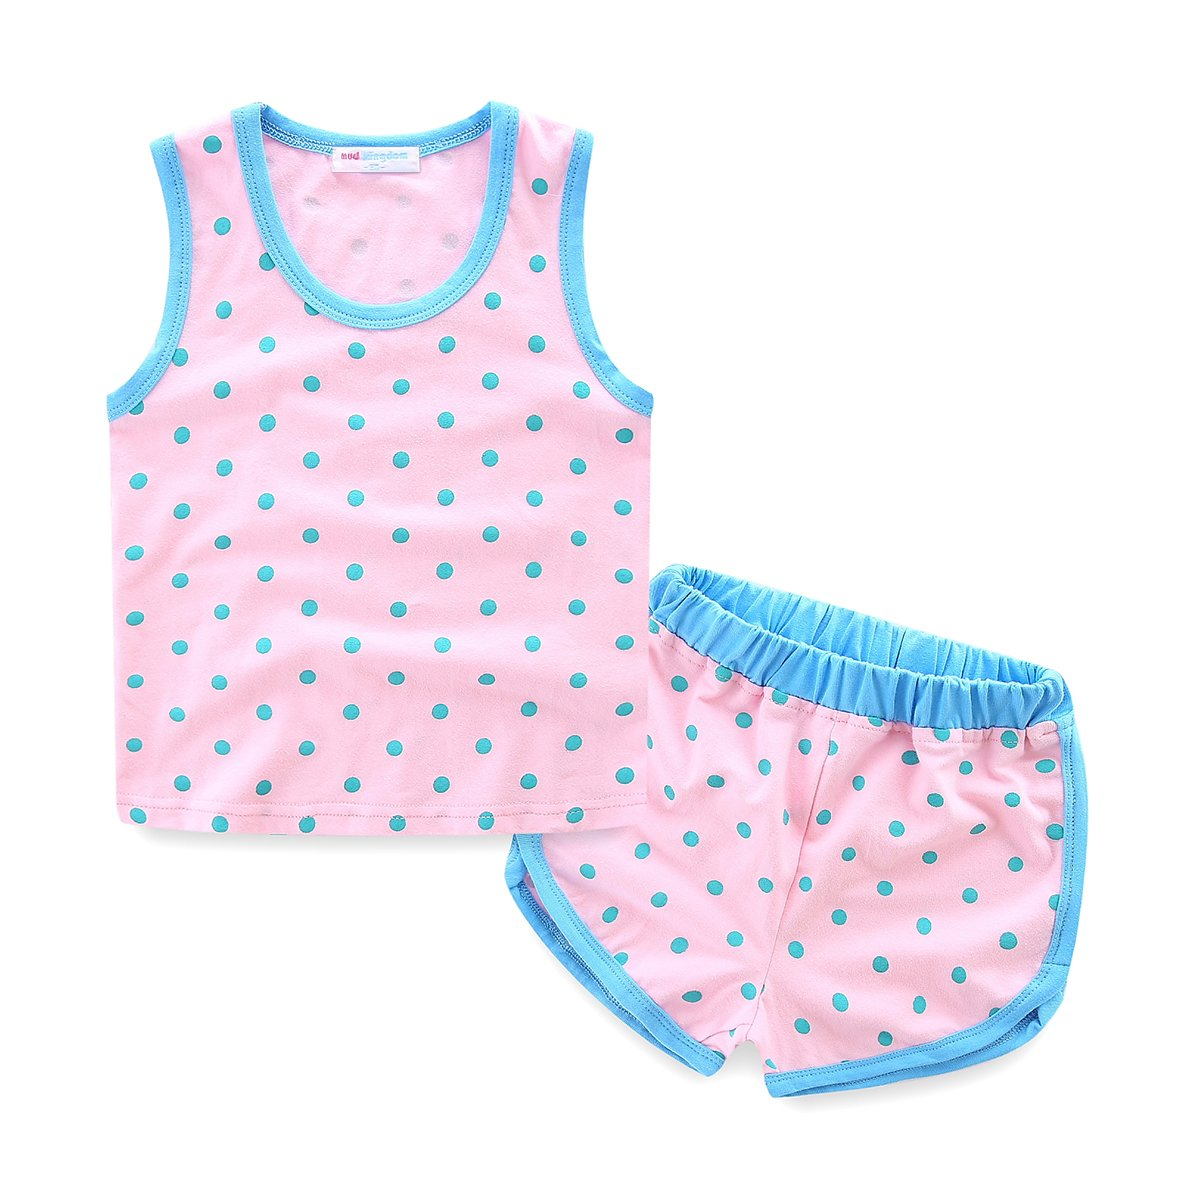 Mud Kingdom Girls Outfits Polka Dot Tank Top and Short Clothes Sets Holiday Size 6 Light Pink